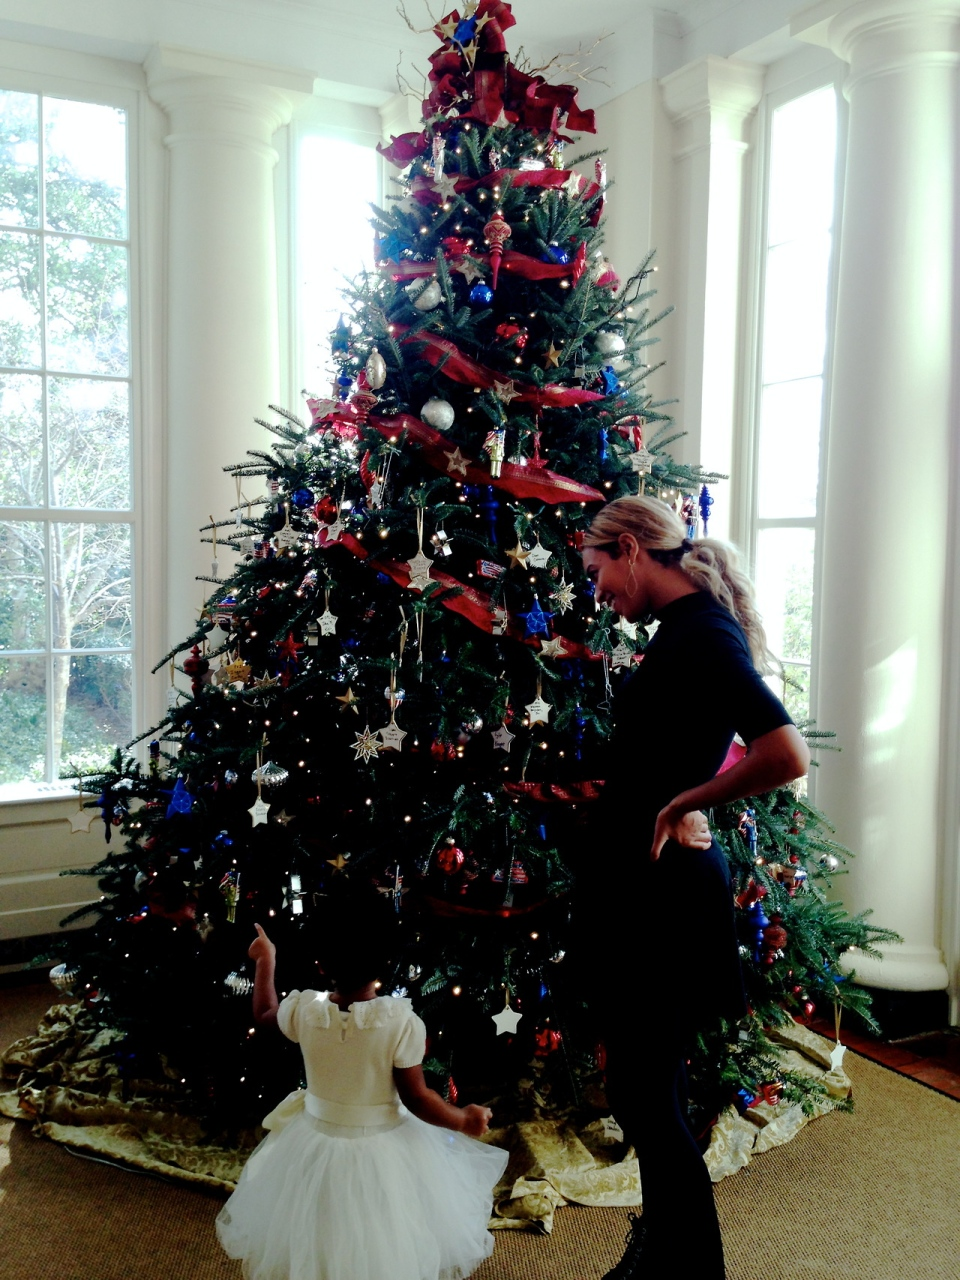 Beyonce and her daughter, Blue Ivy, stand by a Christmas tree at the White House in Washington, Saturday, Jan. 18, 2014. (beyonce.com/tumblr)